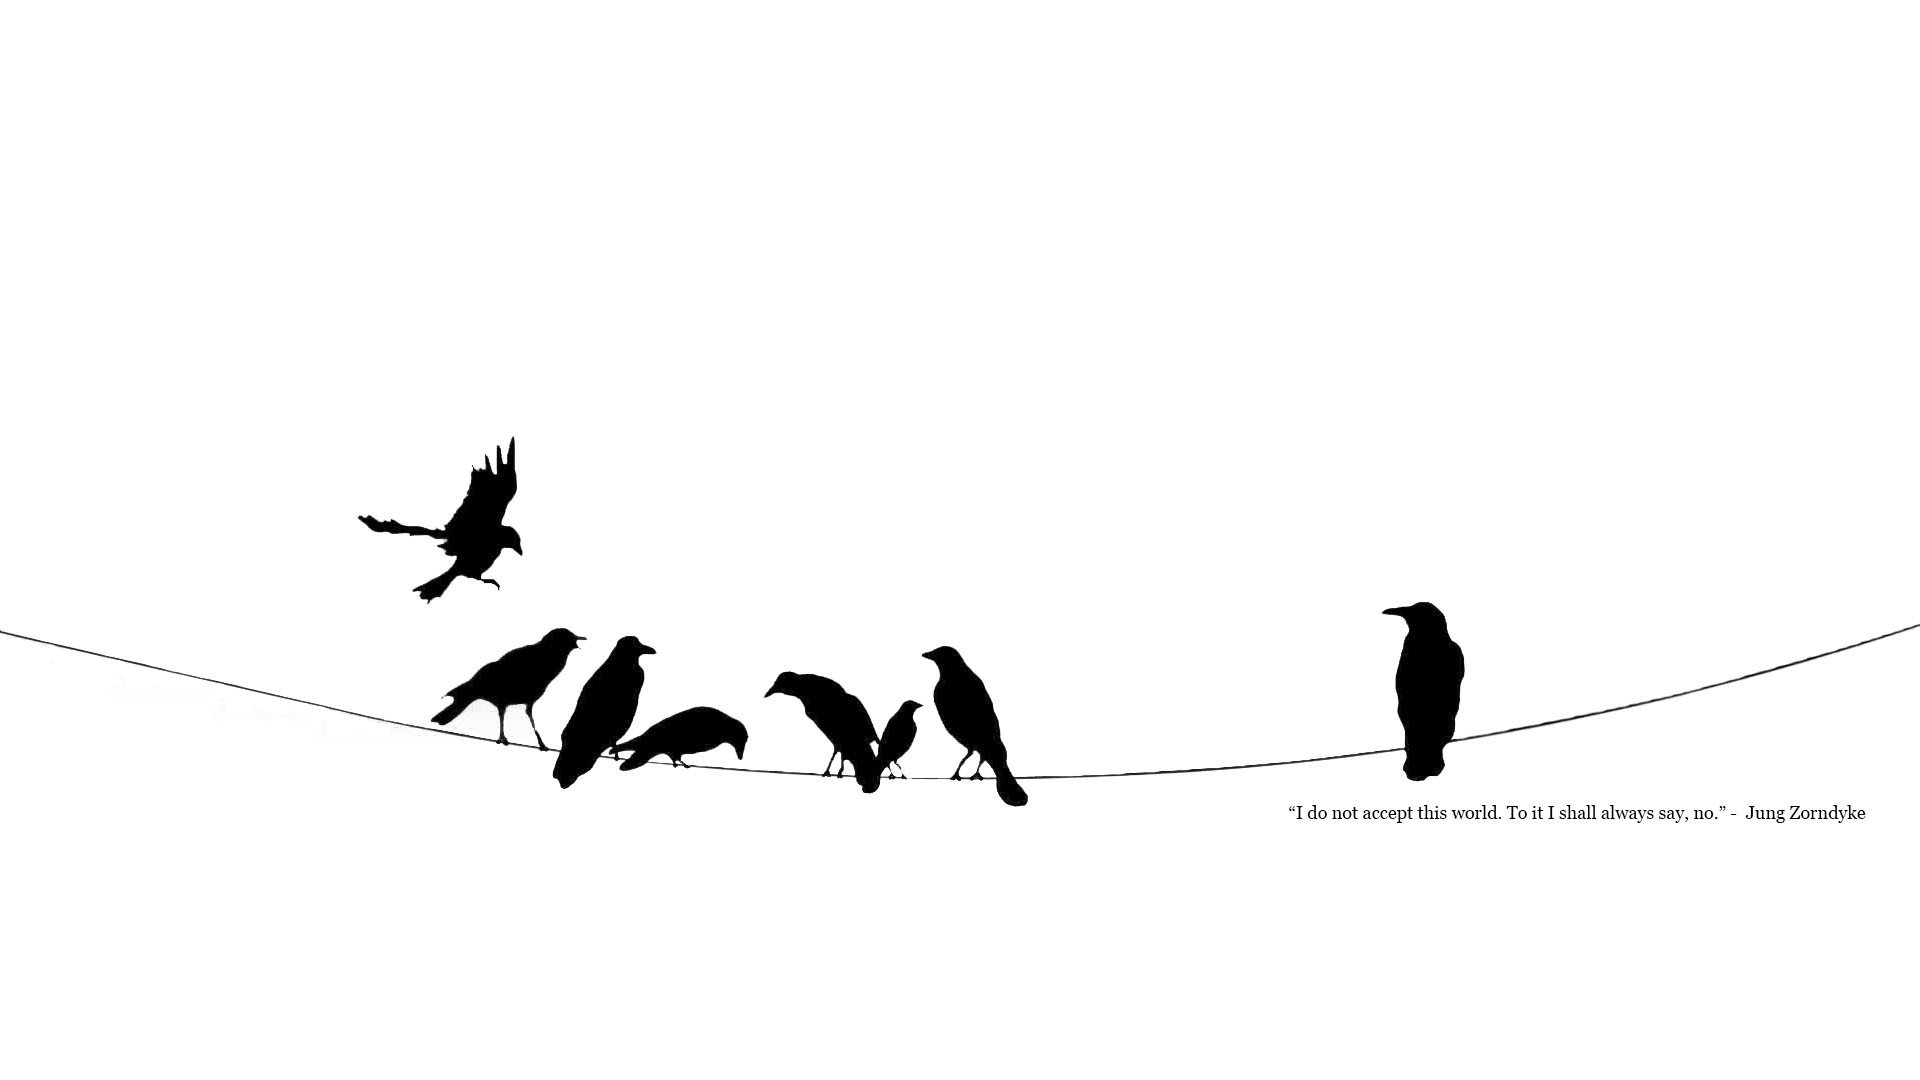 black and white minimalistic power lines crows ravens 12x18 20x30 24x36 32x48 Inch poster Print 9(China (Mainland))